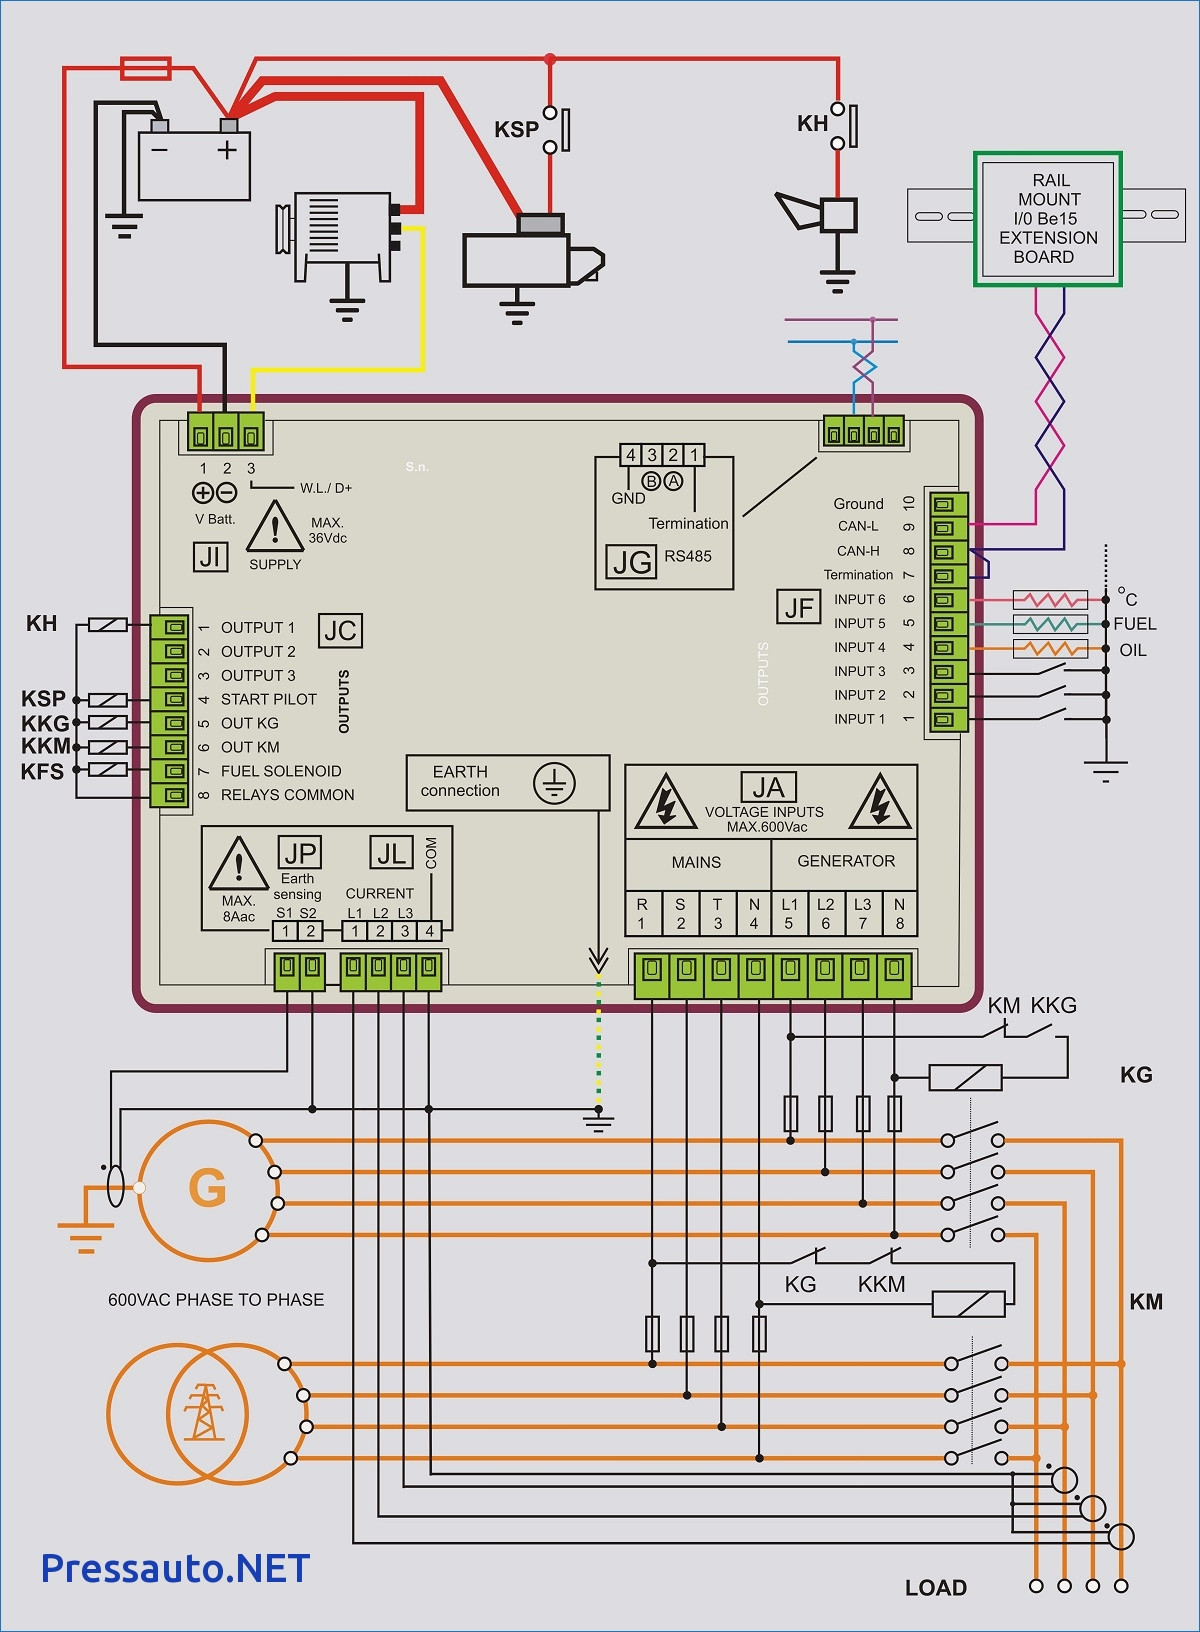 Standby Generator Transfer Switch Wiring Diagram from wholefoodsonabudget.com